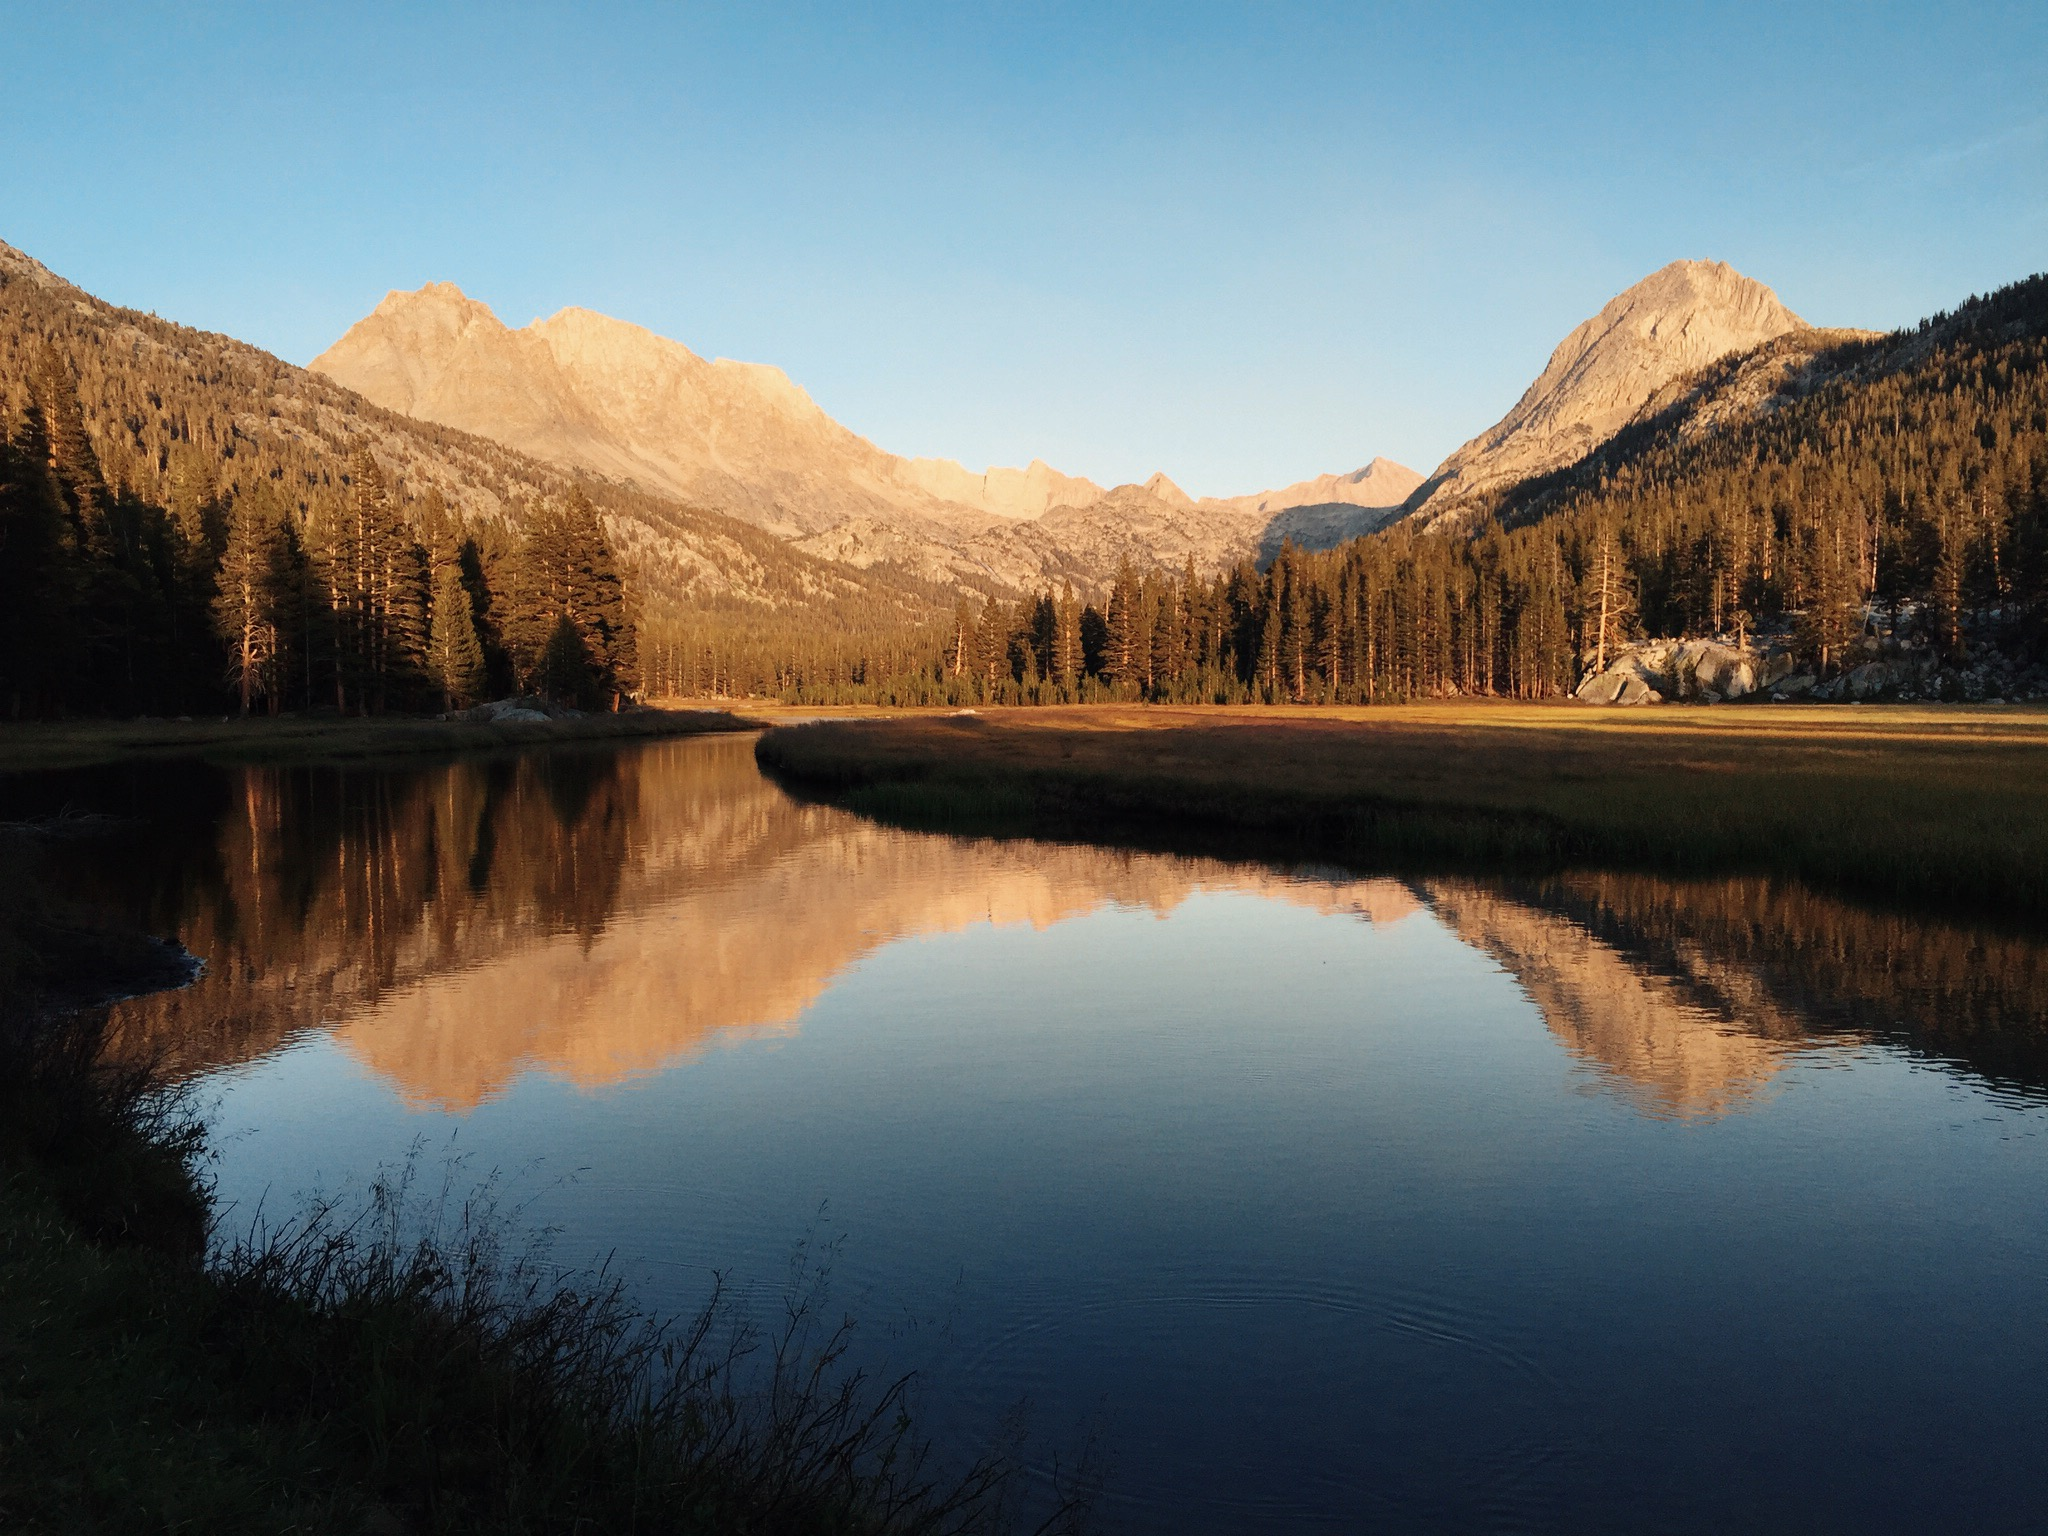 Sunset at McClure Meadow, with The Hermit (12,328') and the Evolution Group peaks reflected in Evolution Creek.